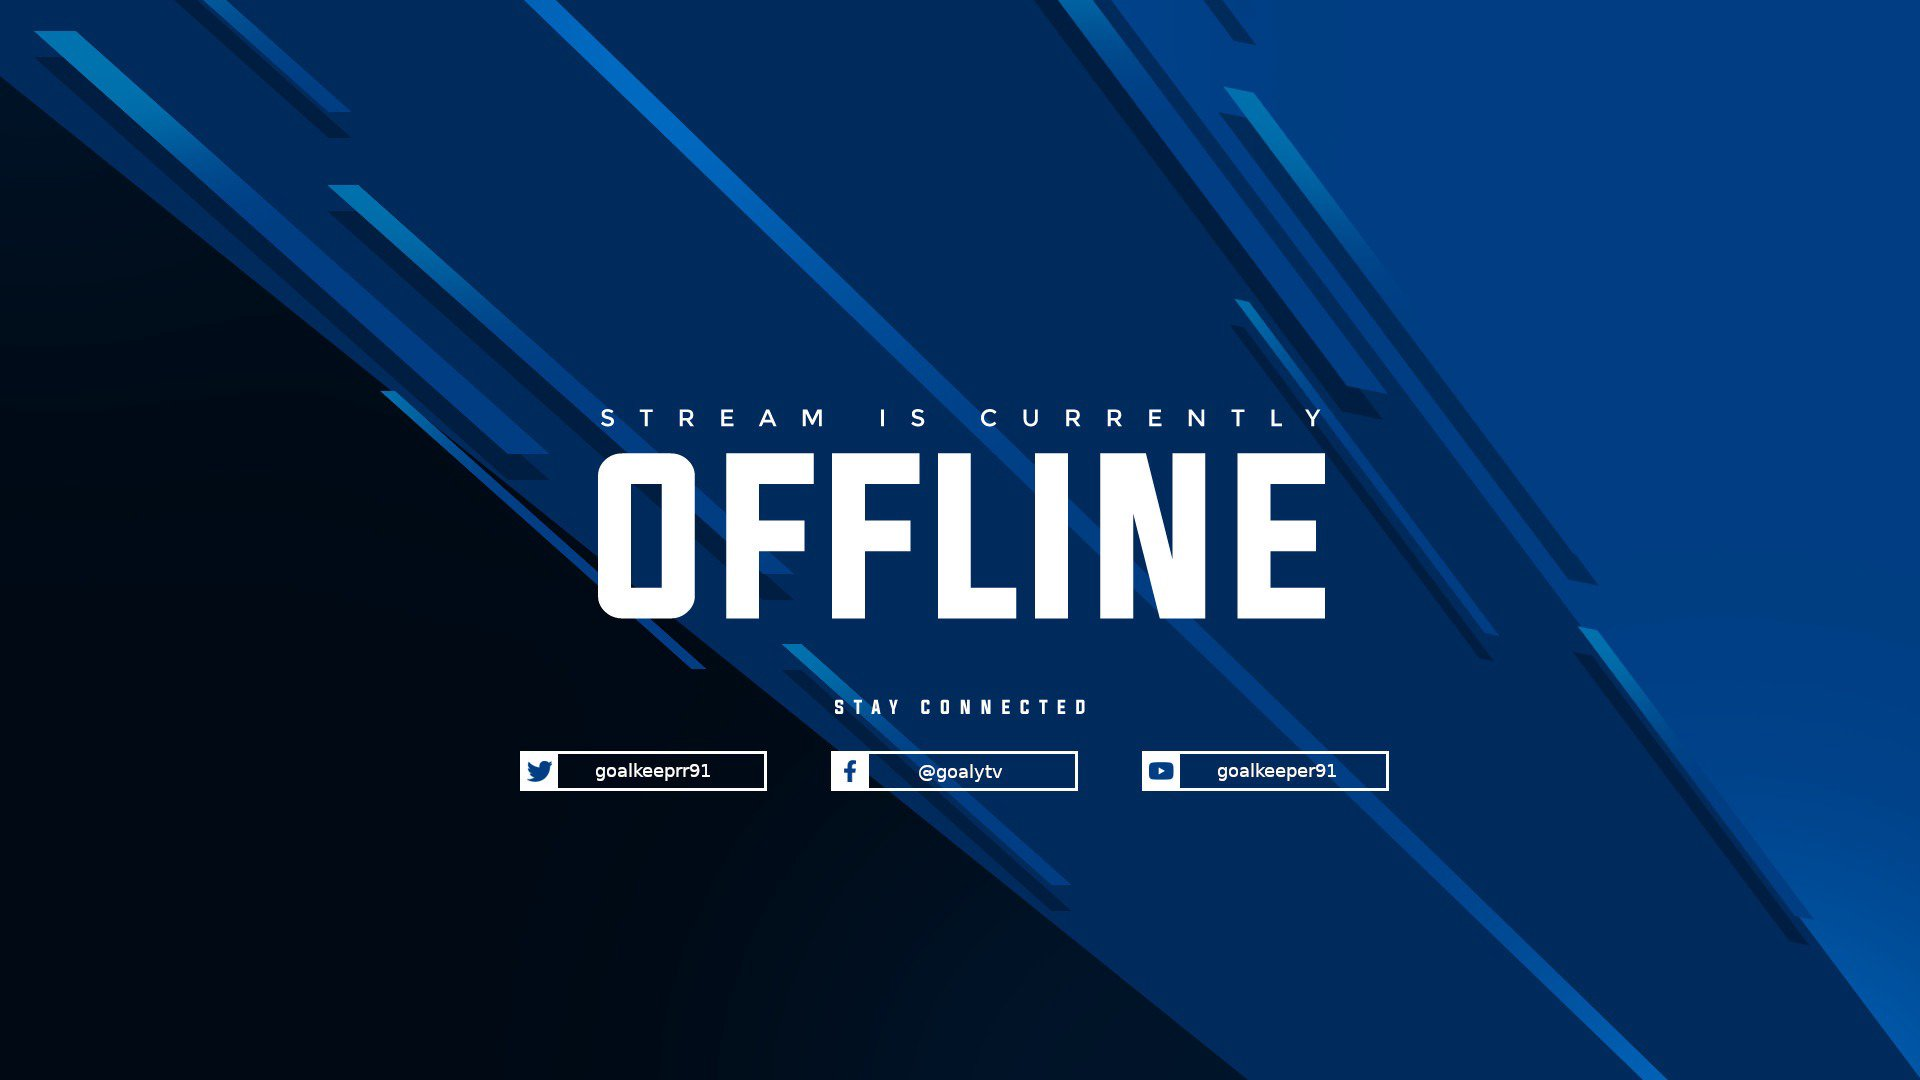 Twitch stream of goalkeeper91